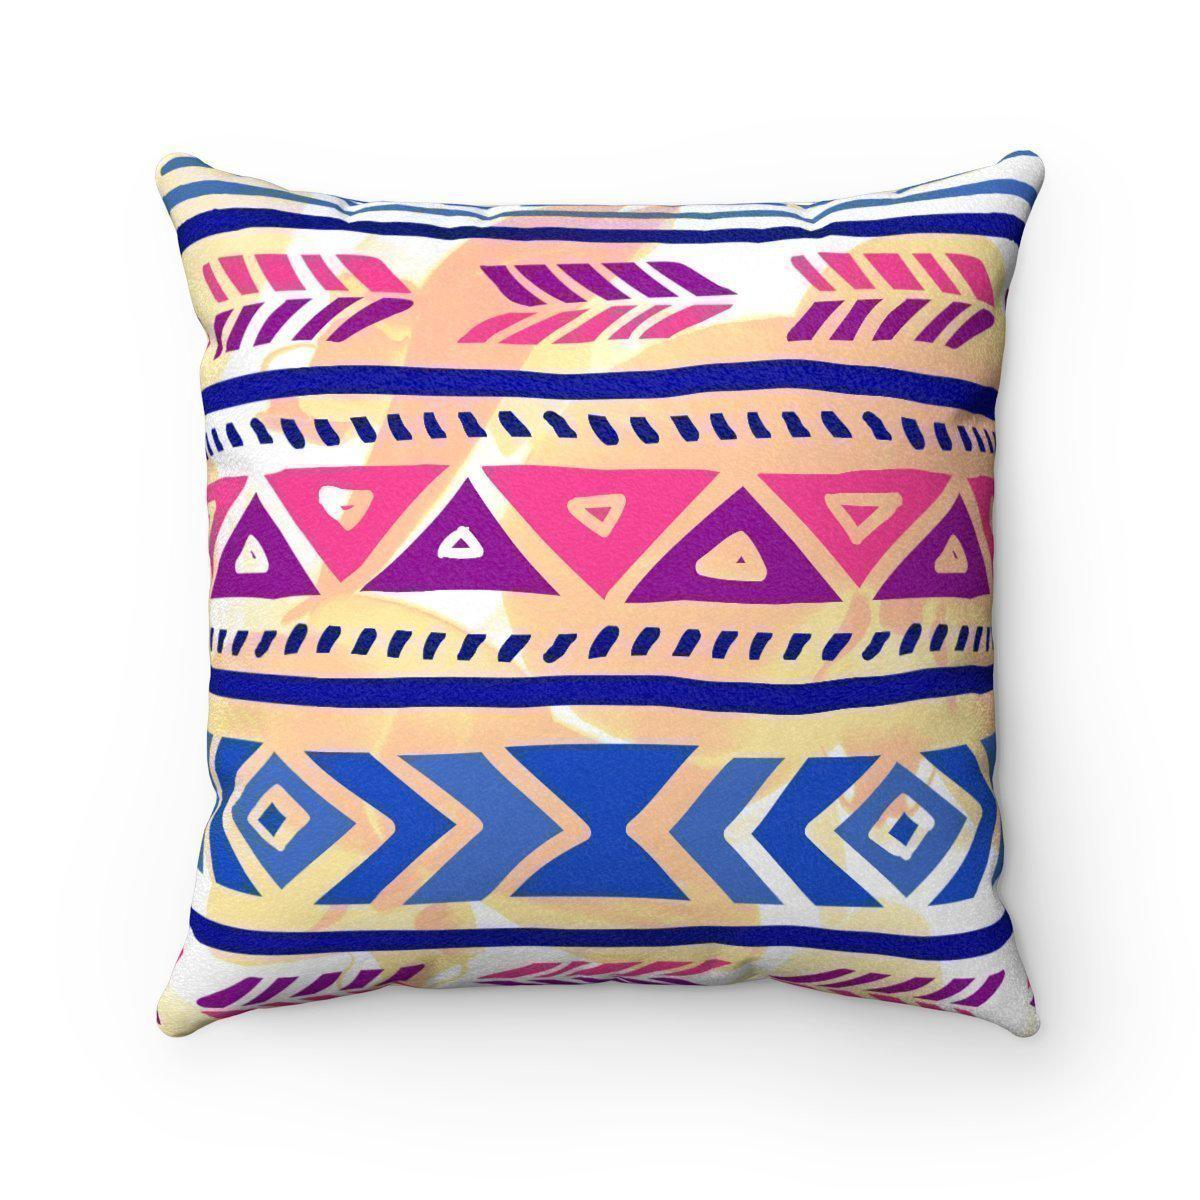 Purple Faux suede 2 in 1 Mexican decorative pillow w/insert-Home Decor - Decorative Accents - Pillows & Throws - Decorative Pillows-Maison d'Elite-16x16-Très Elite